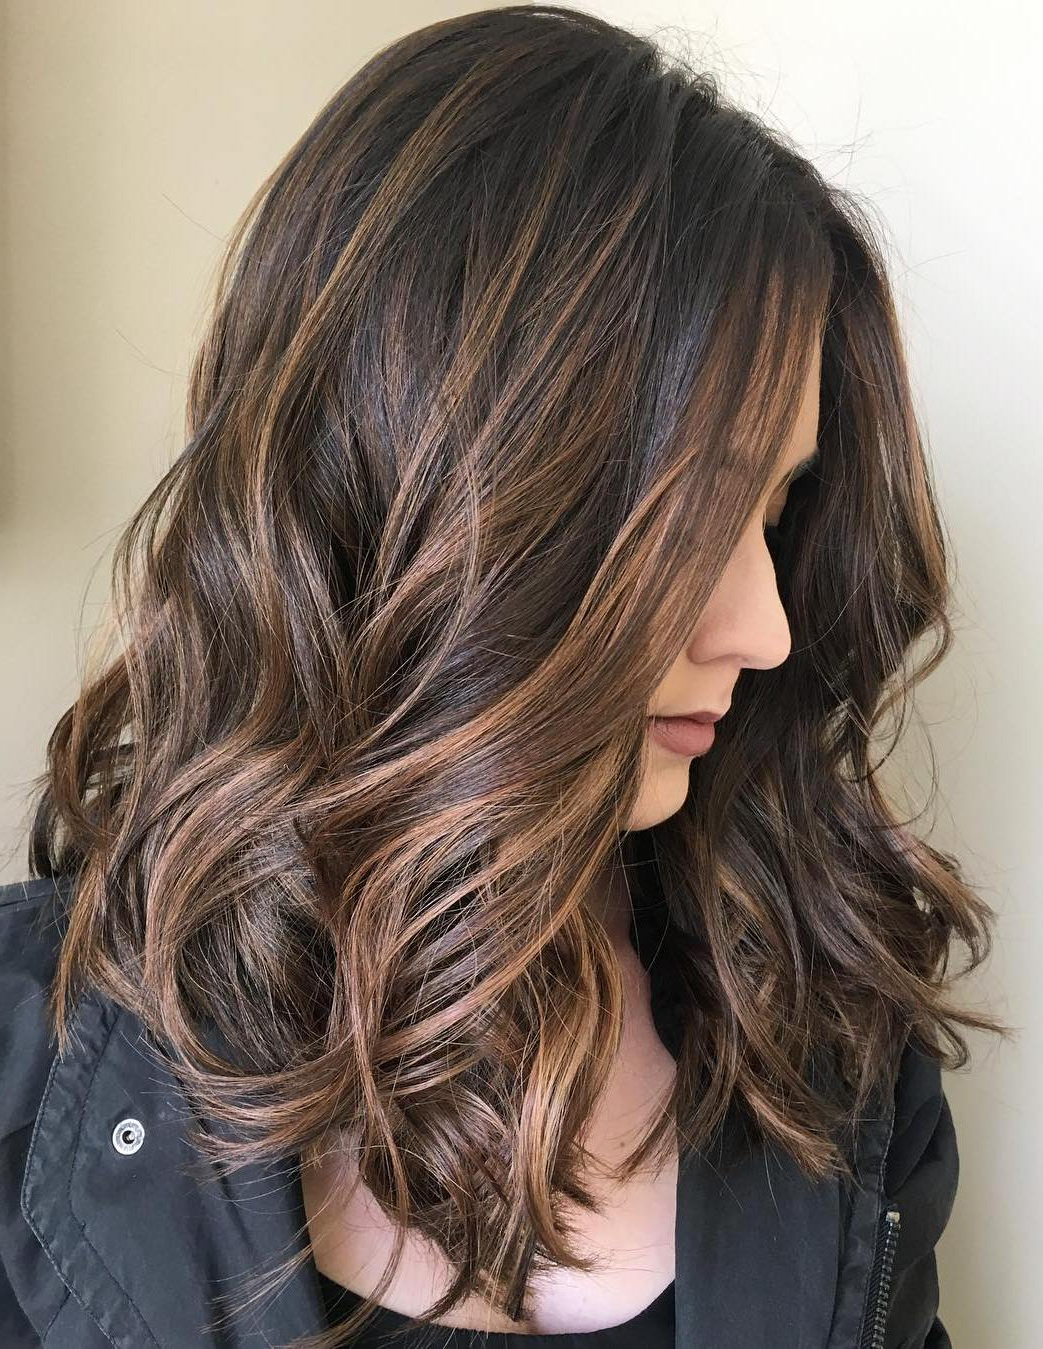 70 Balayage Hair Color Ideas With Blonde, Brown And Caramel Highlights Inside Latest Long Layered Light Chocolate Brown Haircuts (View 10 of 20)